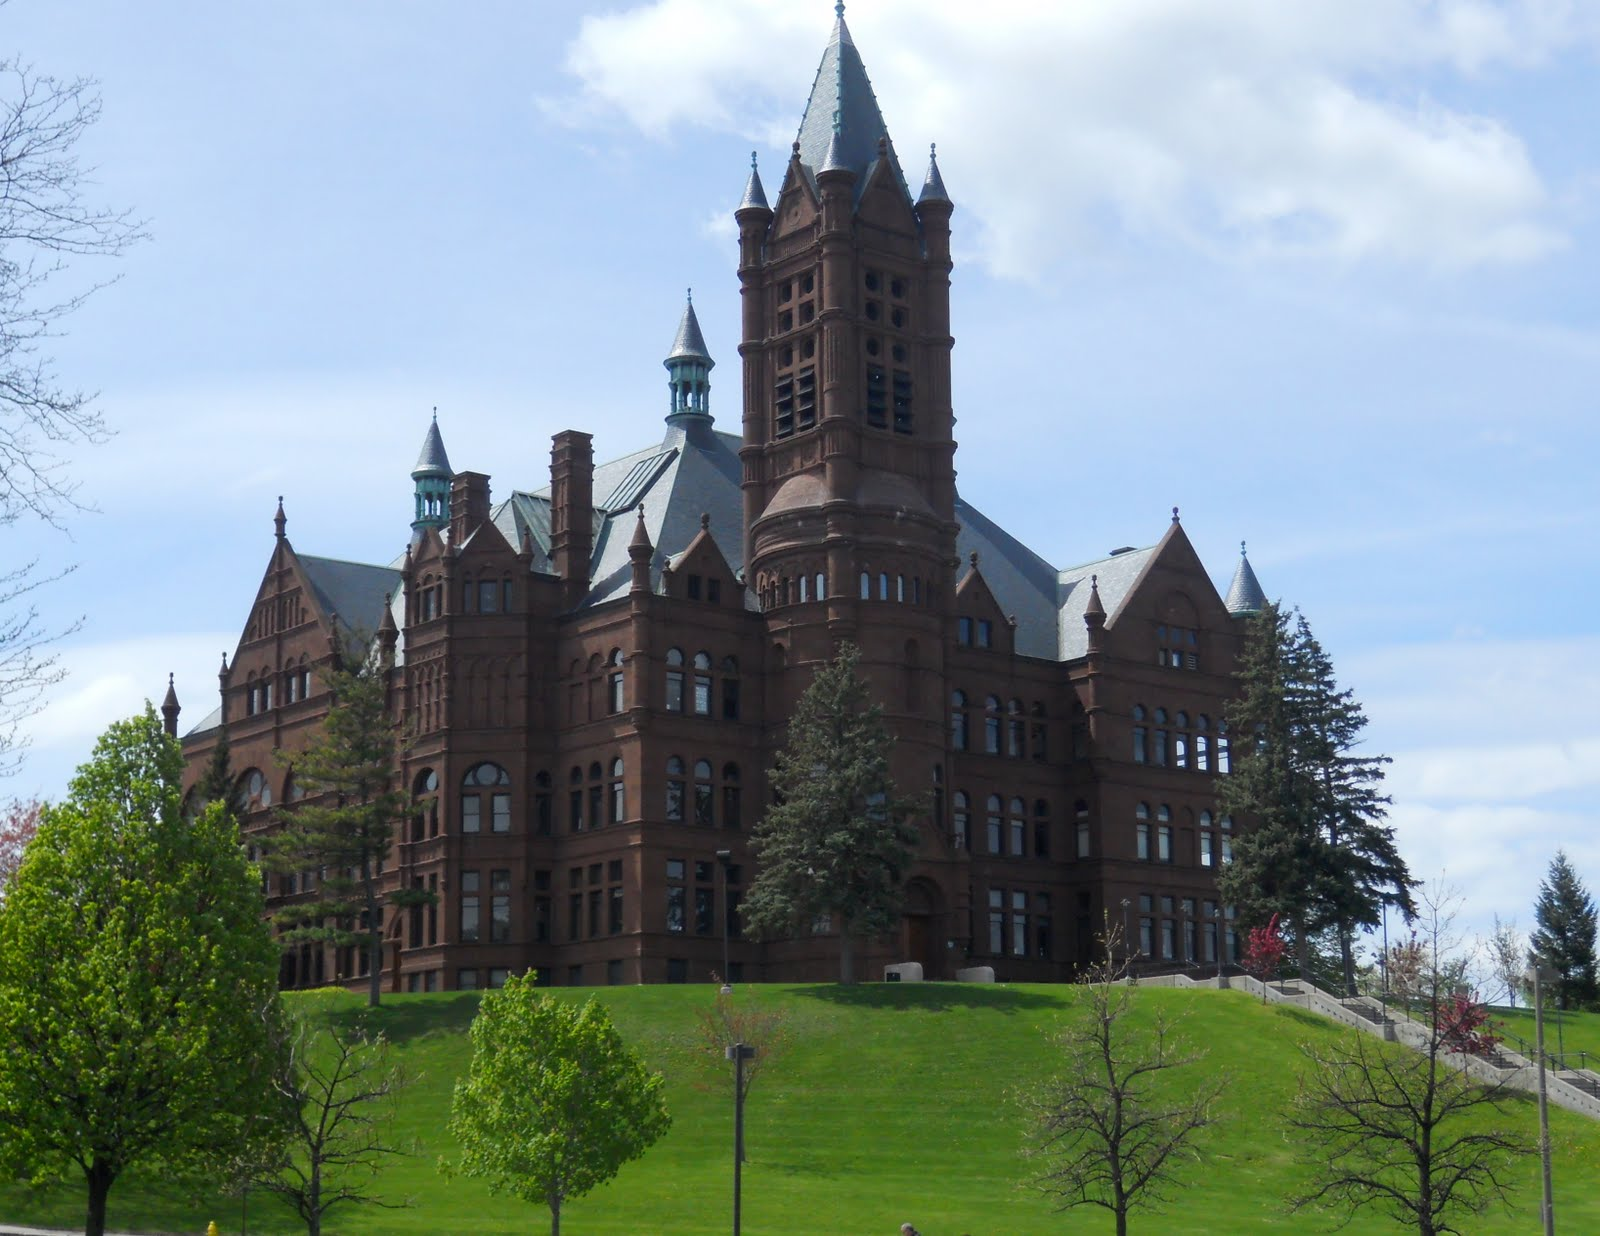 syracuse scholar - photo#4